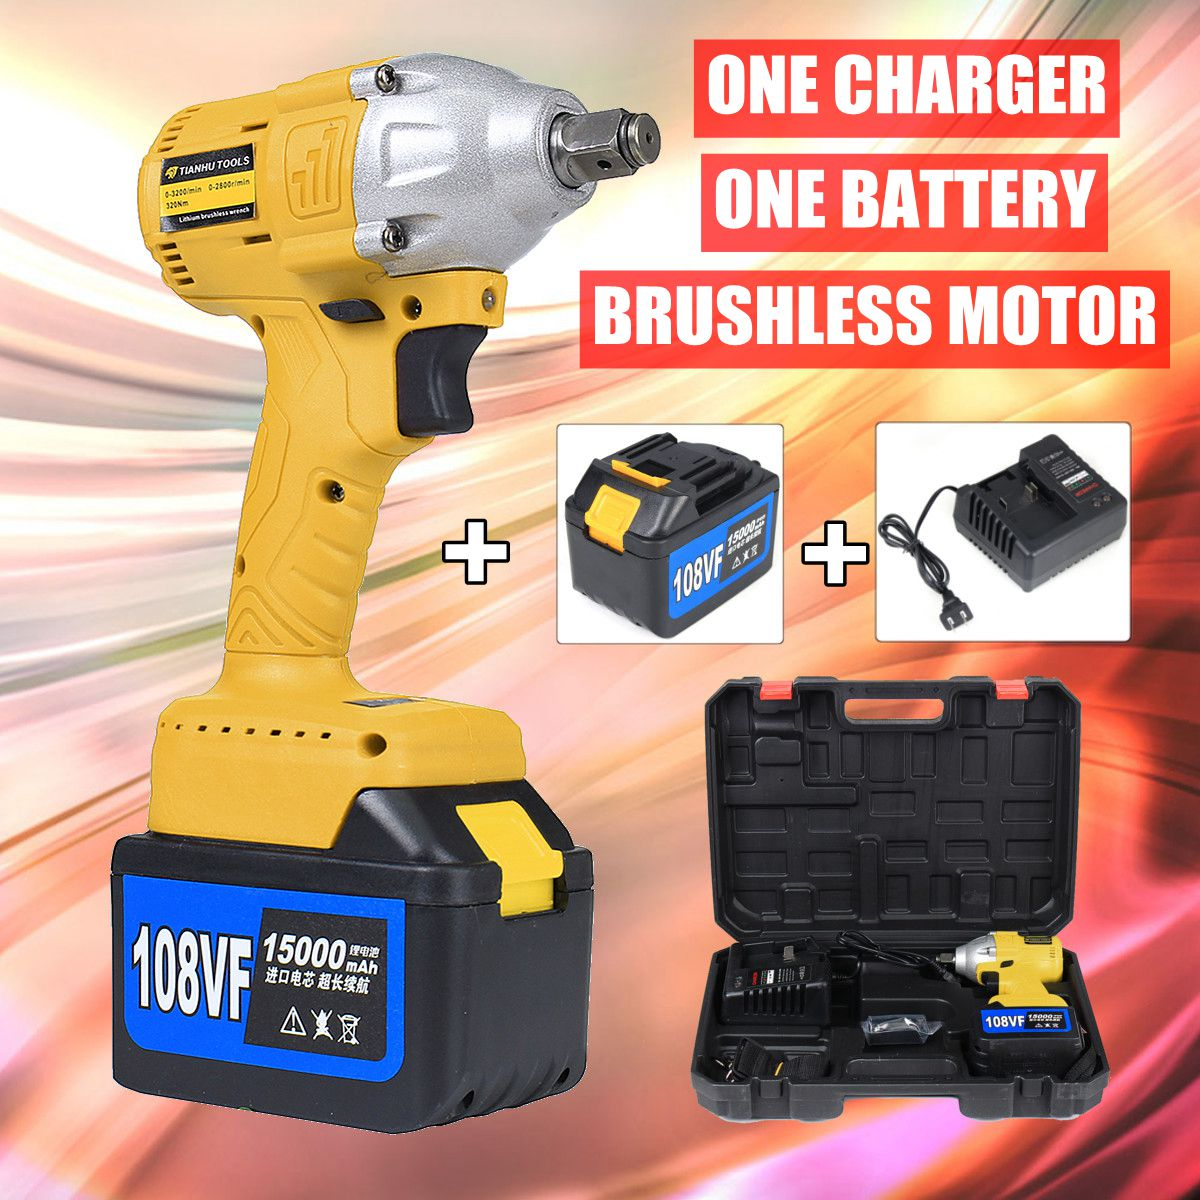 108V Cordless Impact Wrench 1/2 Rechargeable 15000mAh Lithium Battery 320Nm Brushless Electric Wrench tenwa20v brushless electric impact wrench cordless rechargeable lithium battery socket impact digital electric wrench